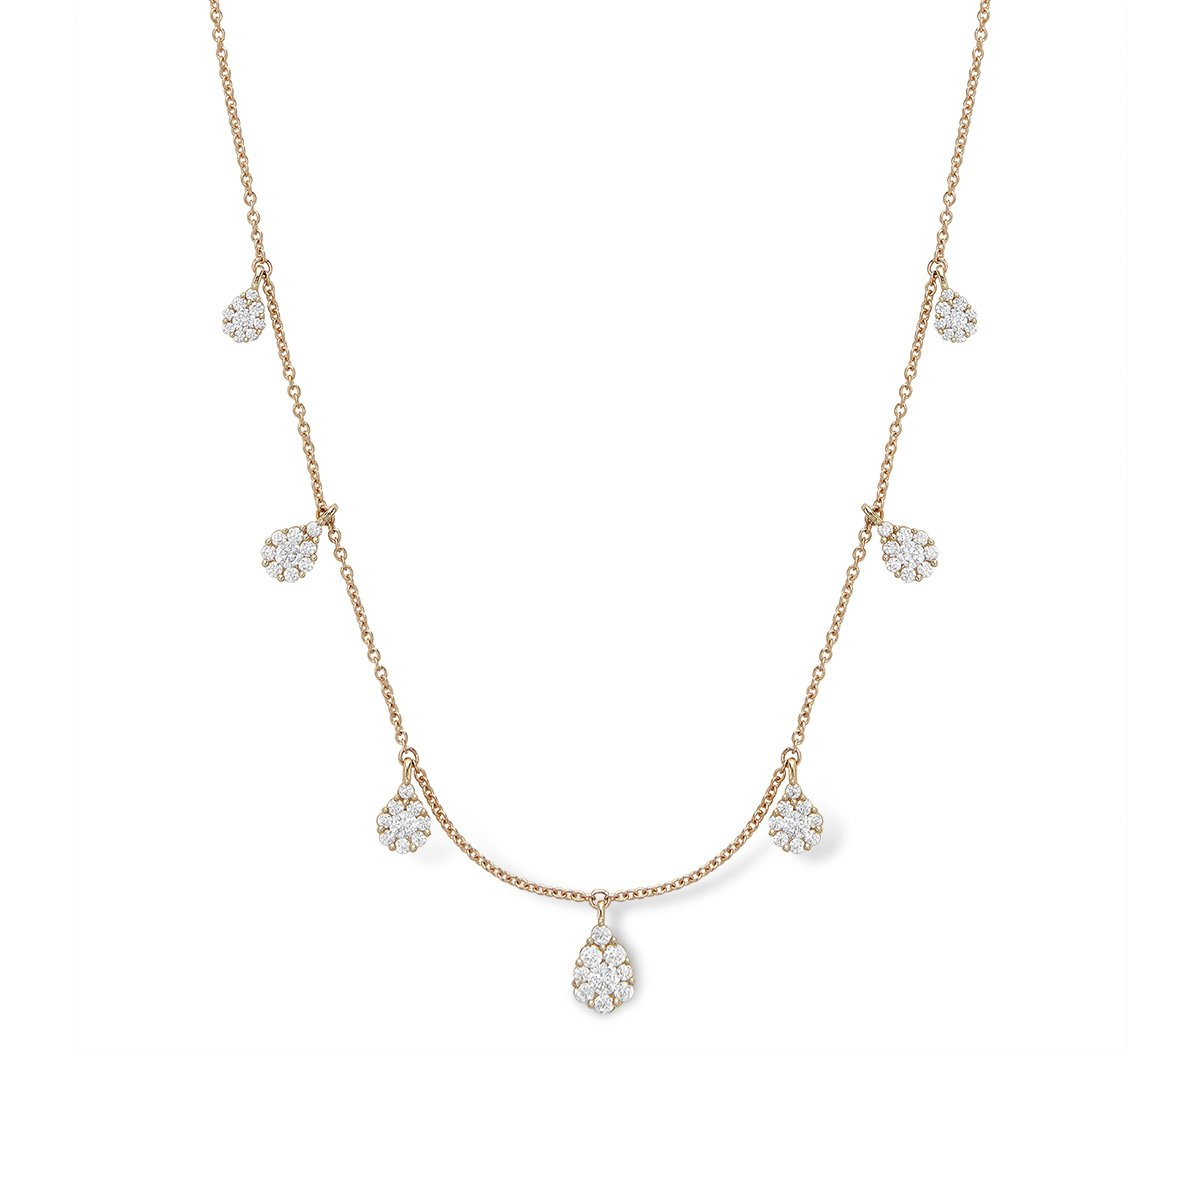 Diamond Droplet Necklace - Serena Williams Jewelry